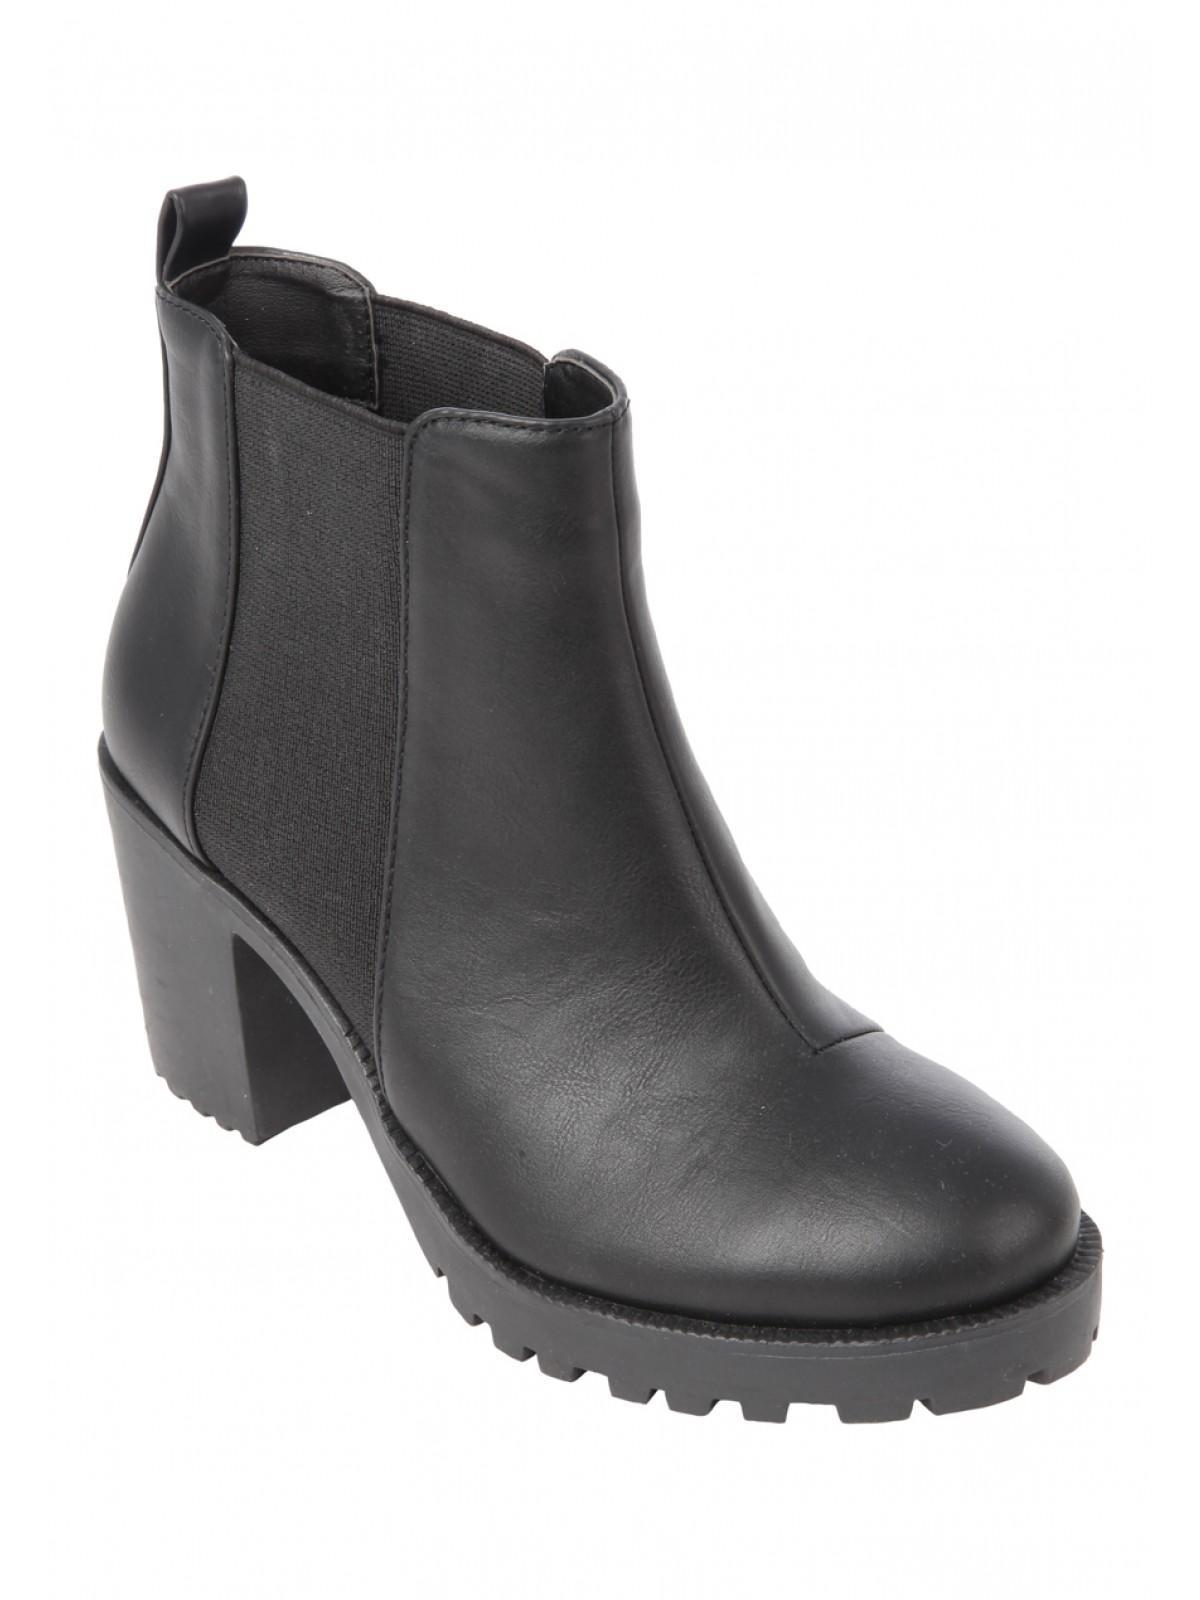 0cfe5f9af9d Womens Cleat Sole Boots